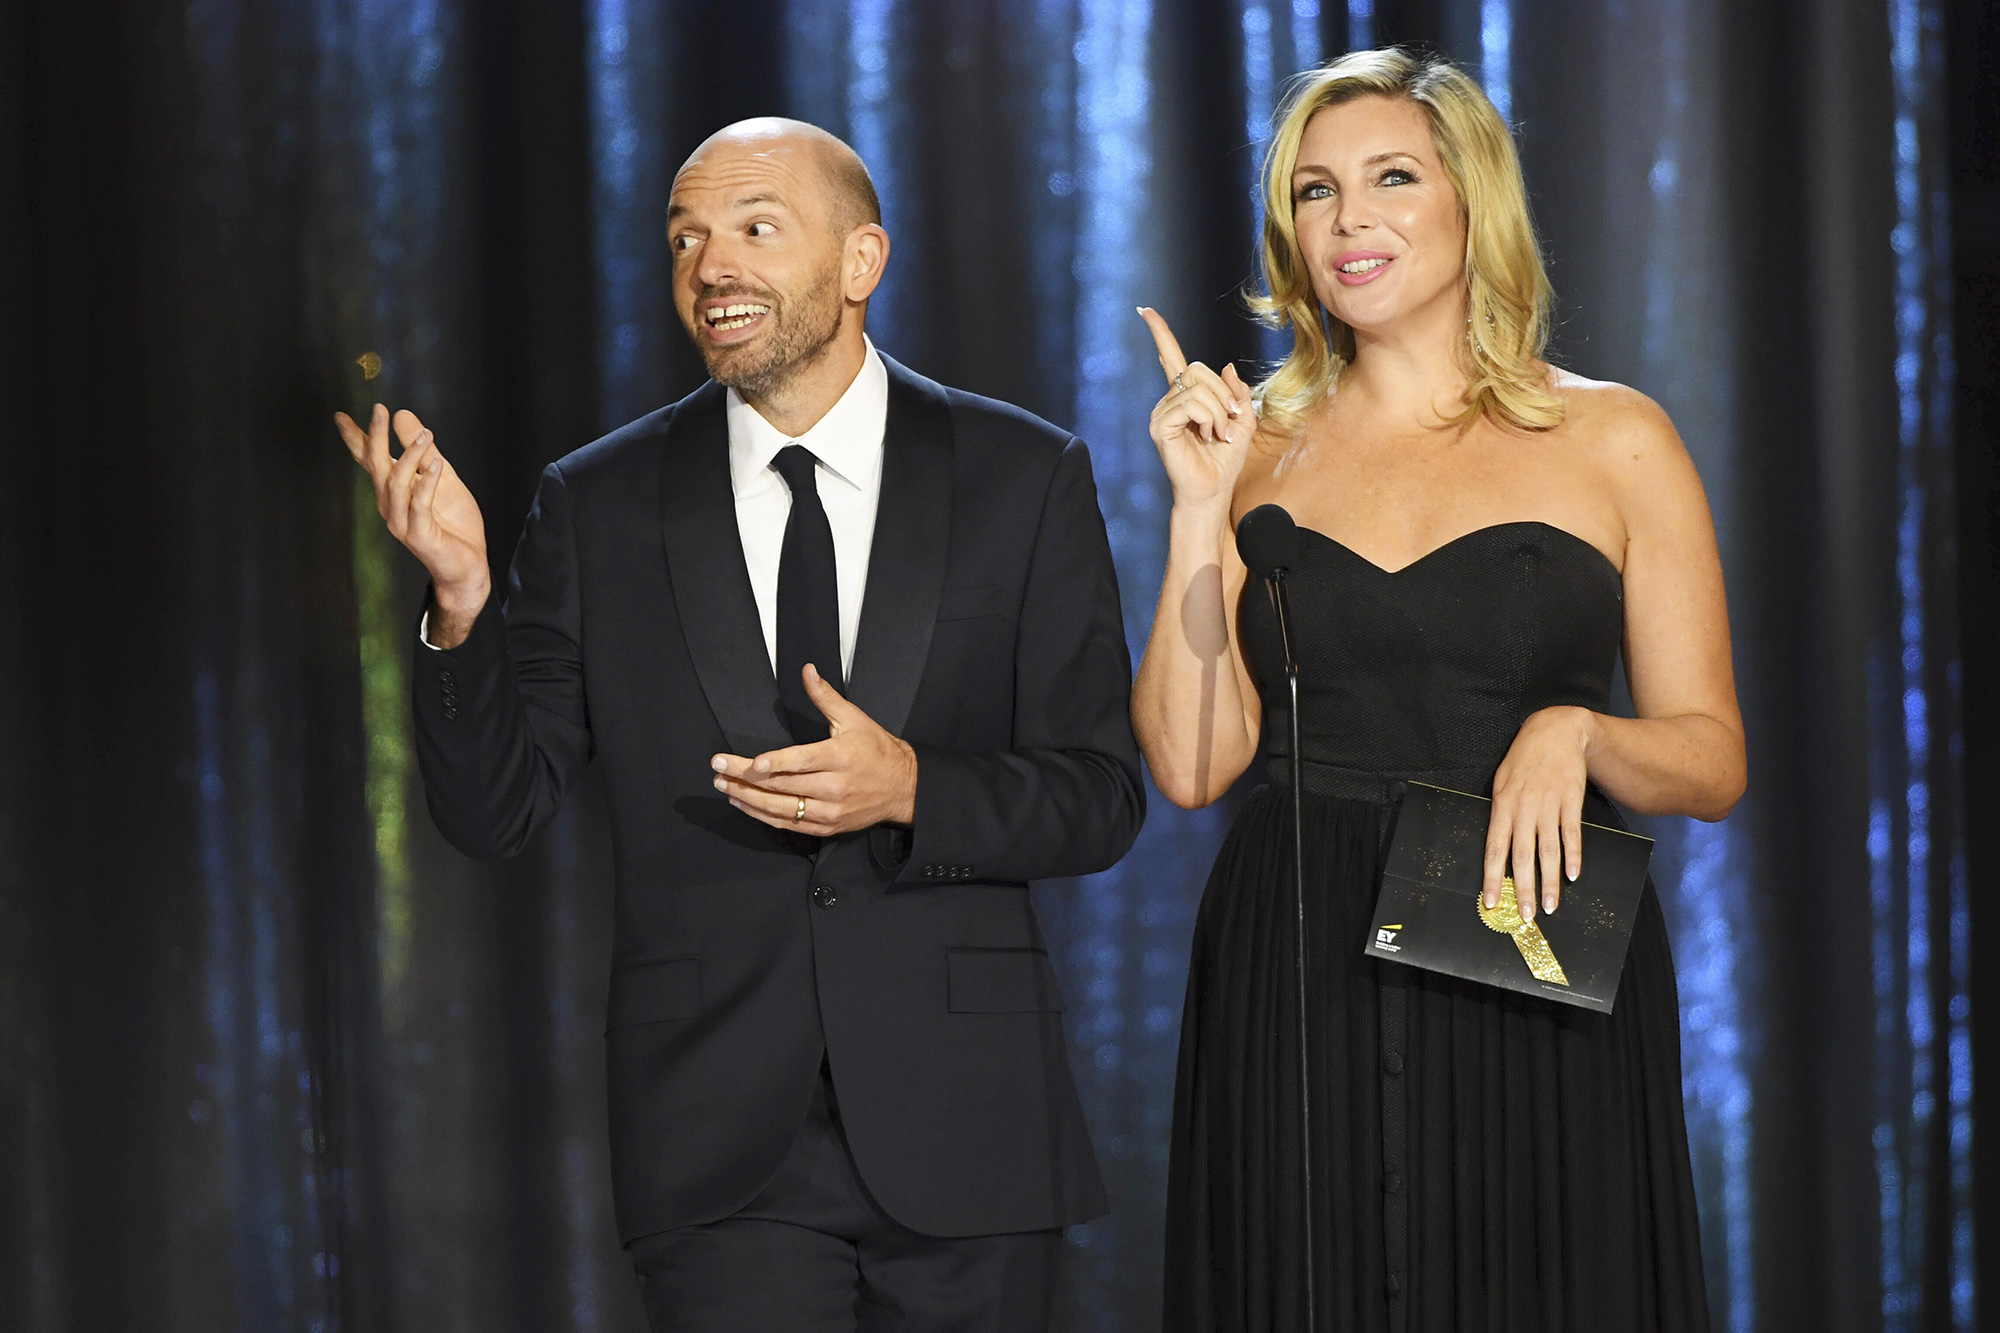 Paul Scheer, left, and June Diane Raphael appear on stage during night one of the Television Academy's 2021 Creative Arts Emmy Awards at the L.A. LIVE Event Deck, in Los Angeles 2021 Creative Arts Emmy Awards - Fixed Show - Night One, Los Angeles, United States - 11 Sep 2021